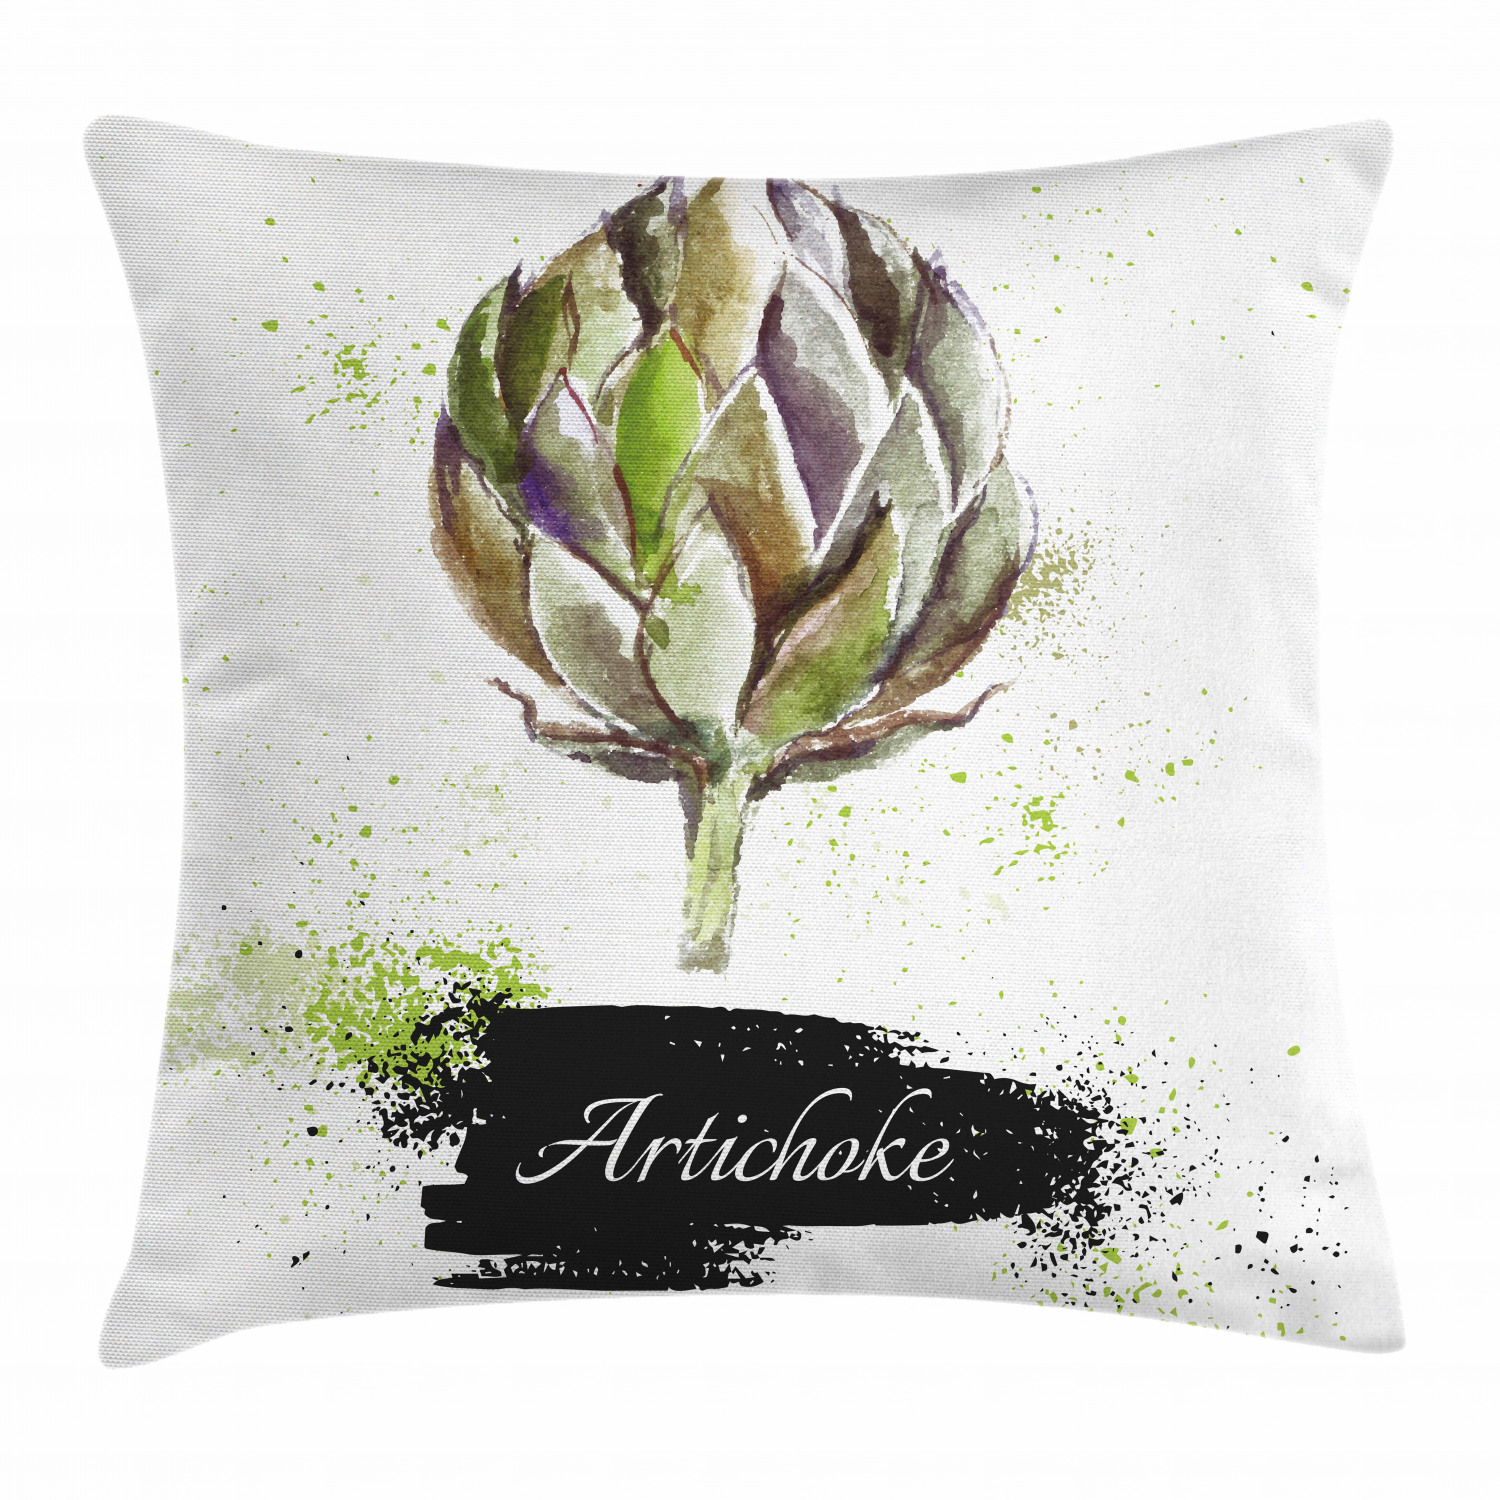 Desert Cactus Throw Pillow Cases Cushion Covers Ambesonne Home Decor 8 Sizes